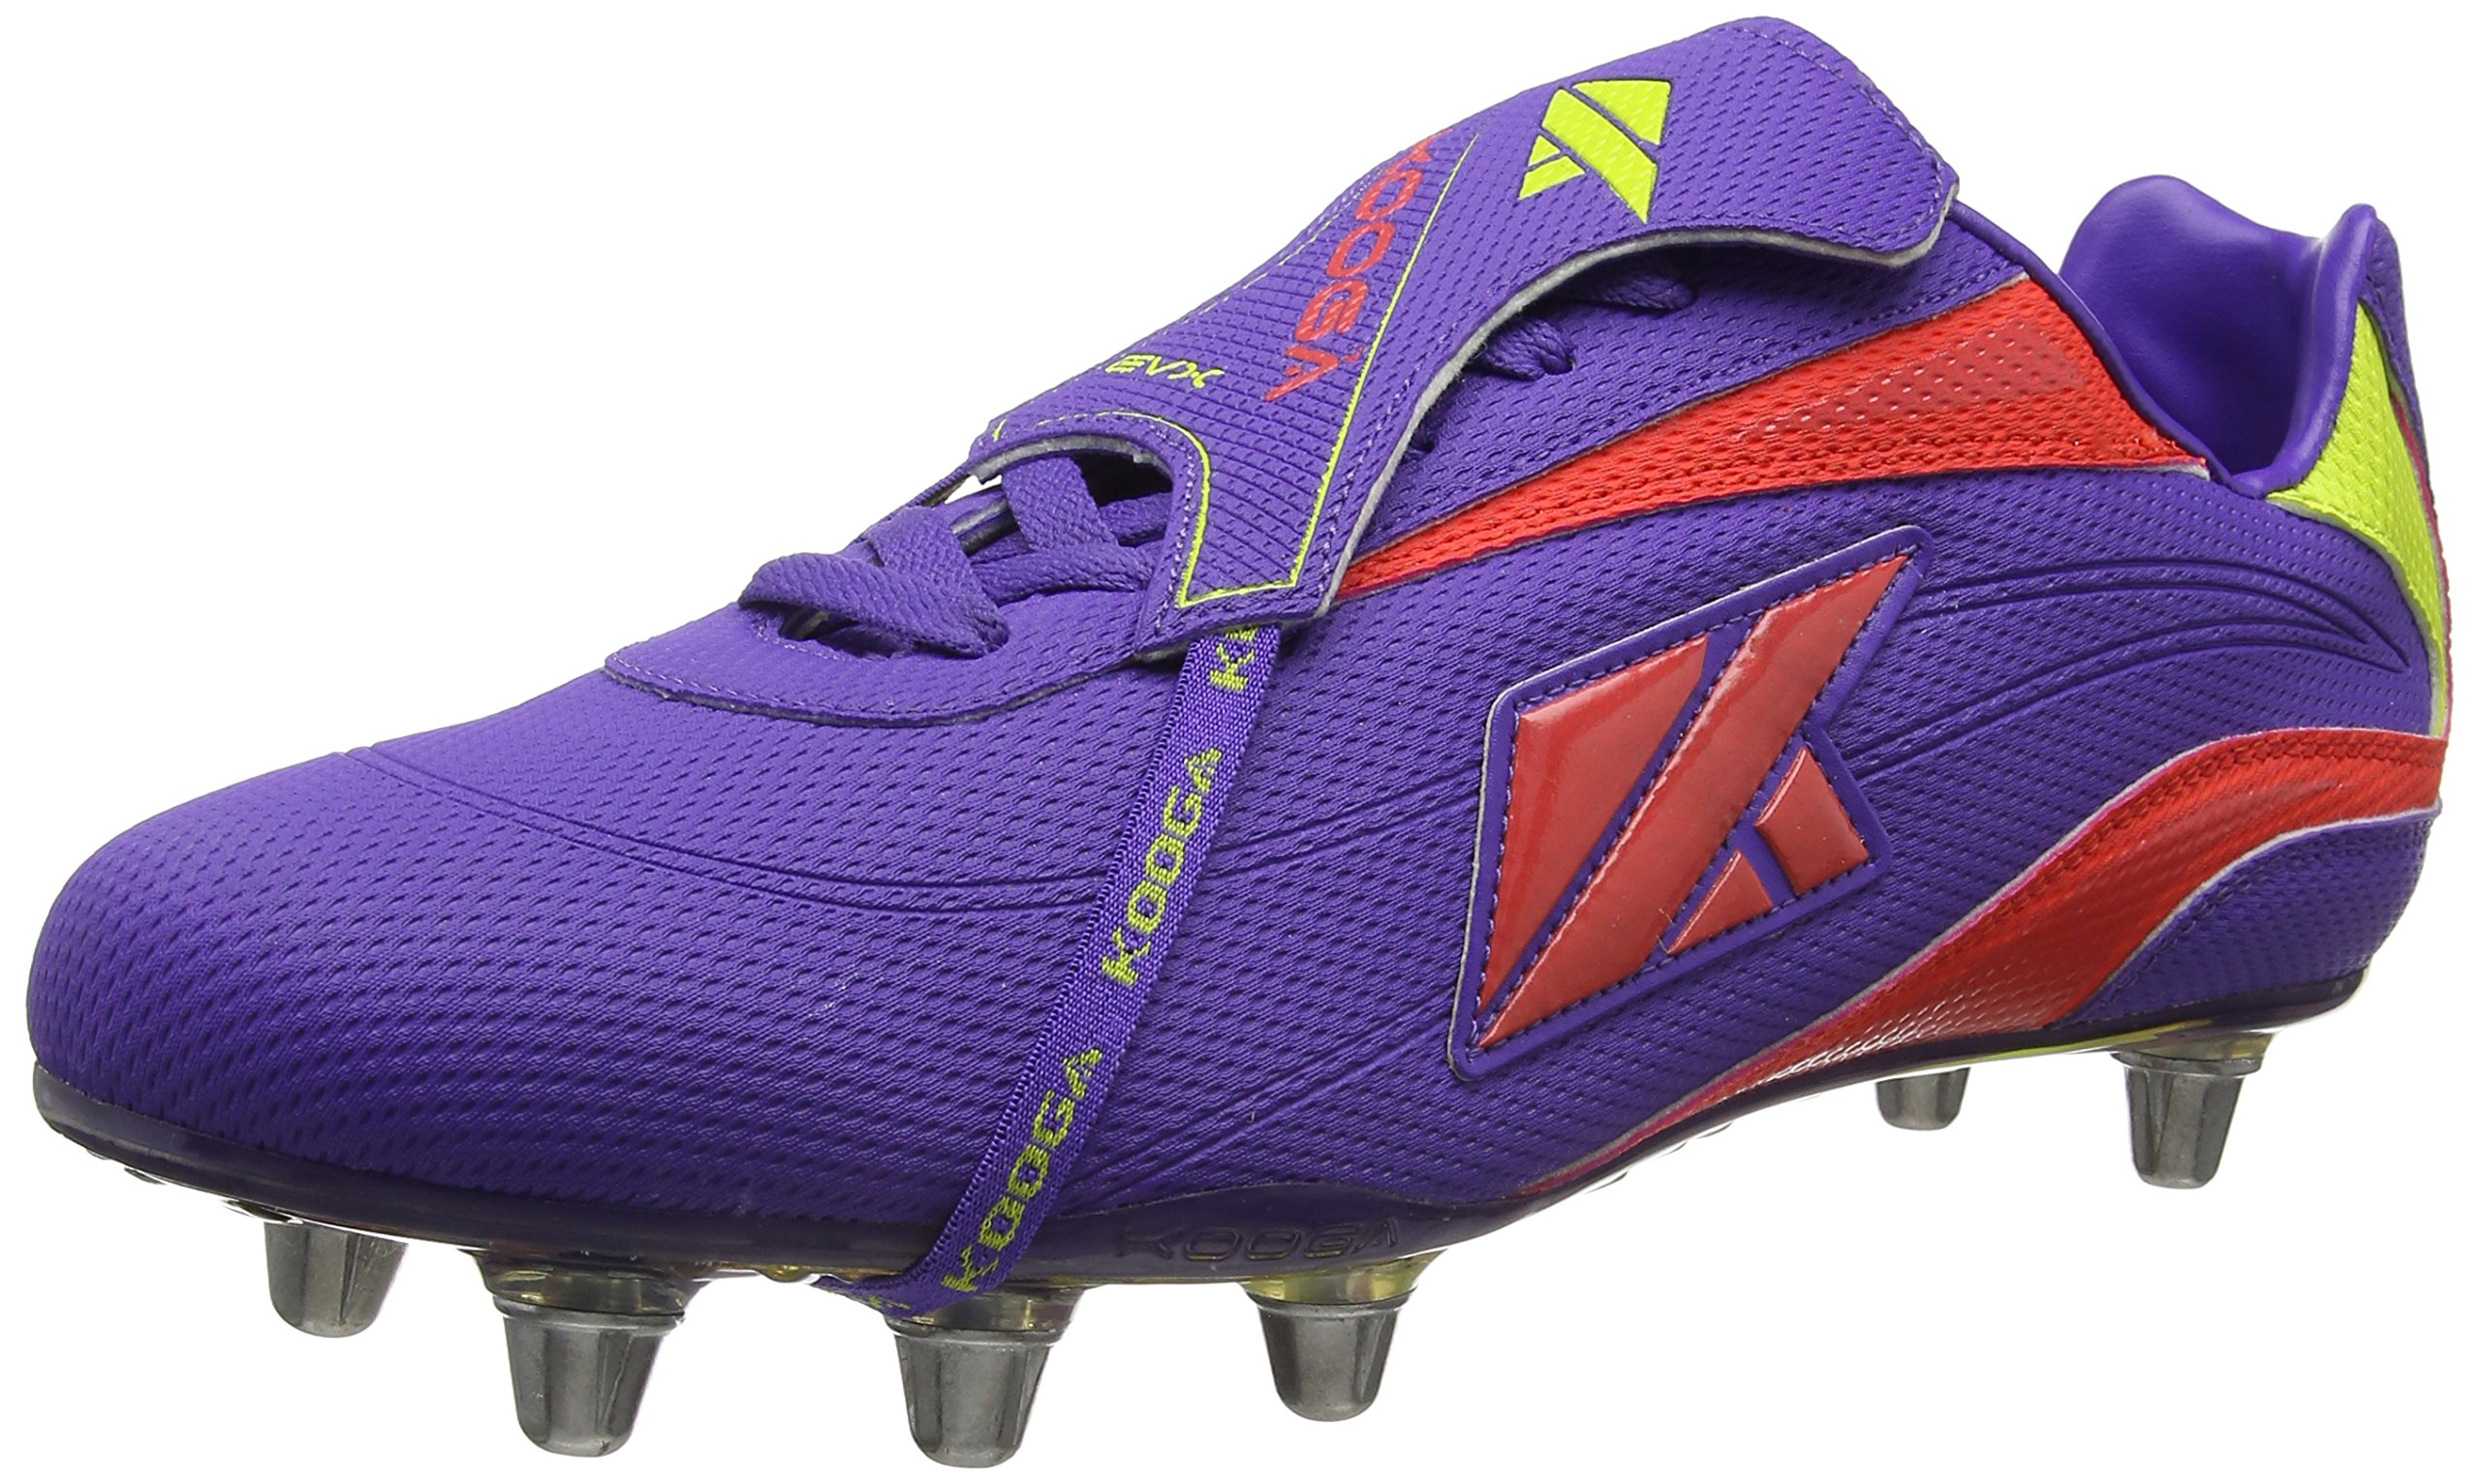 Kooga Nuevo Evx Lcst Adults Boots Purple/multi